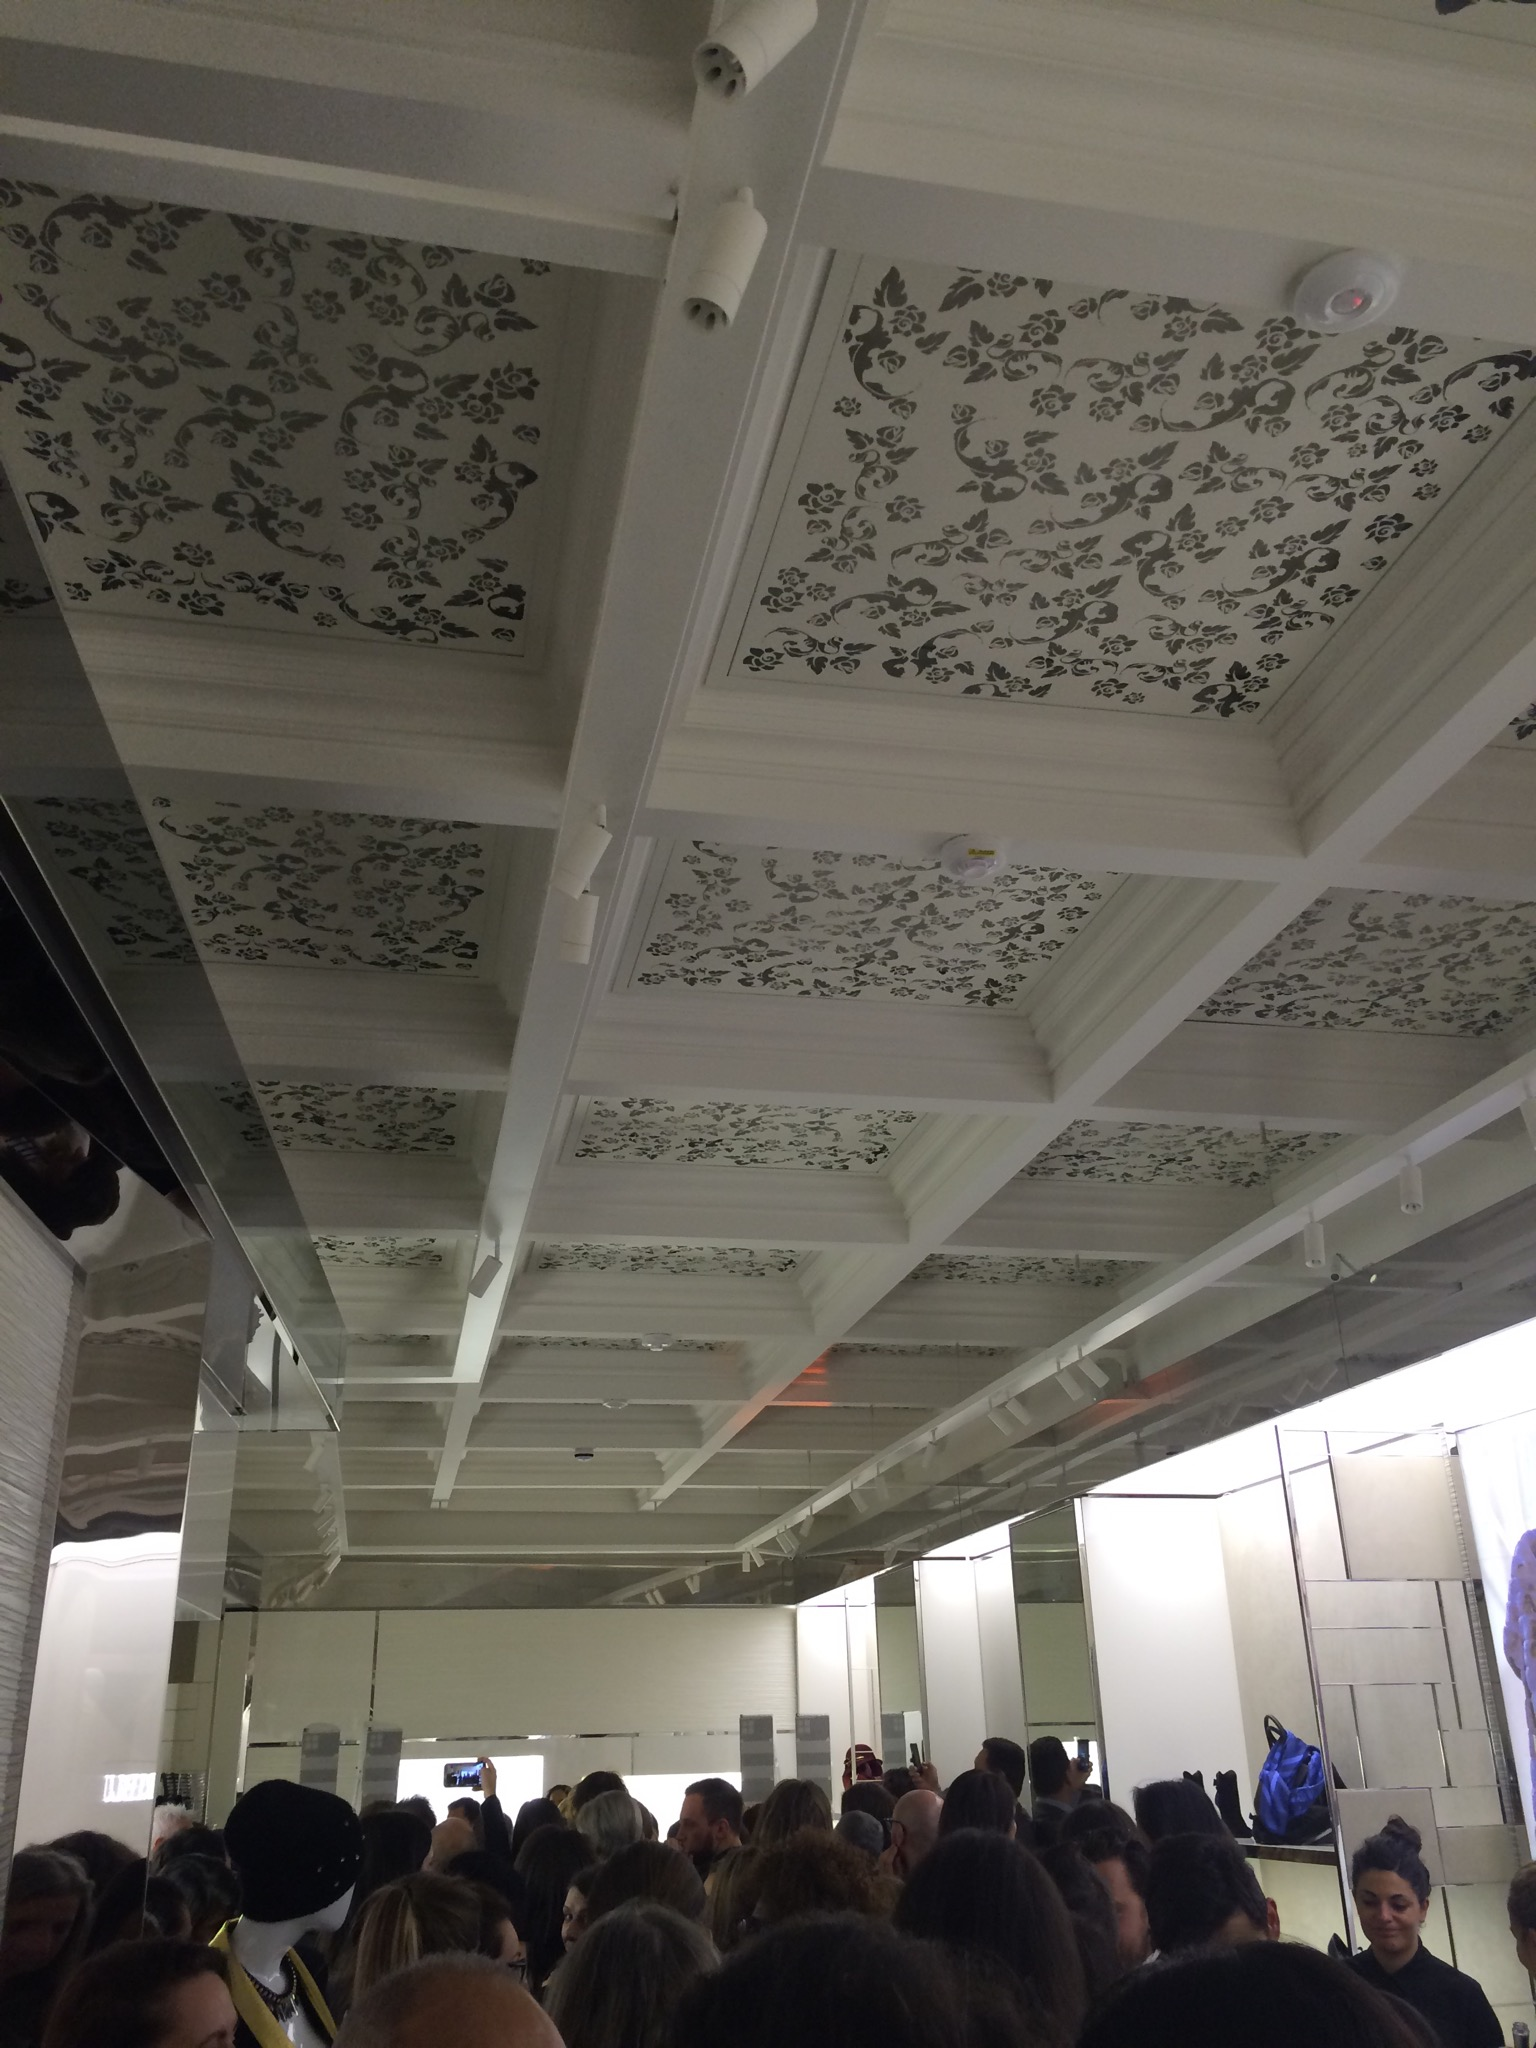 Even the ceilings had a cool design